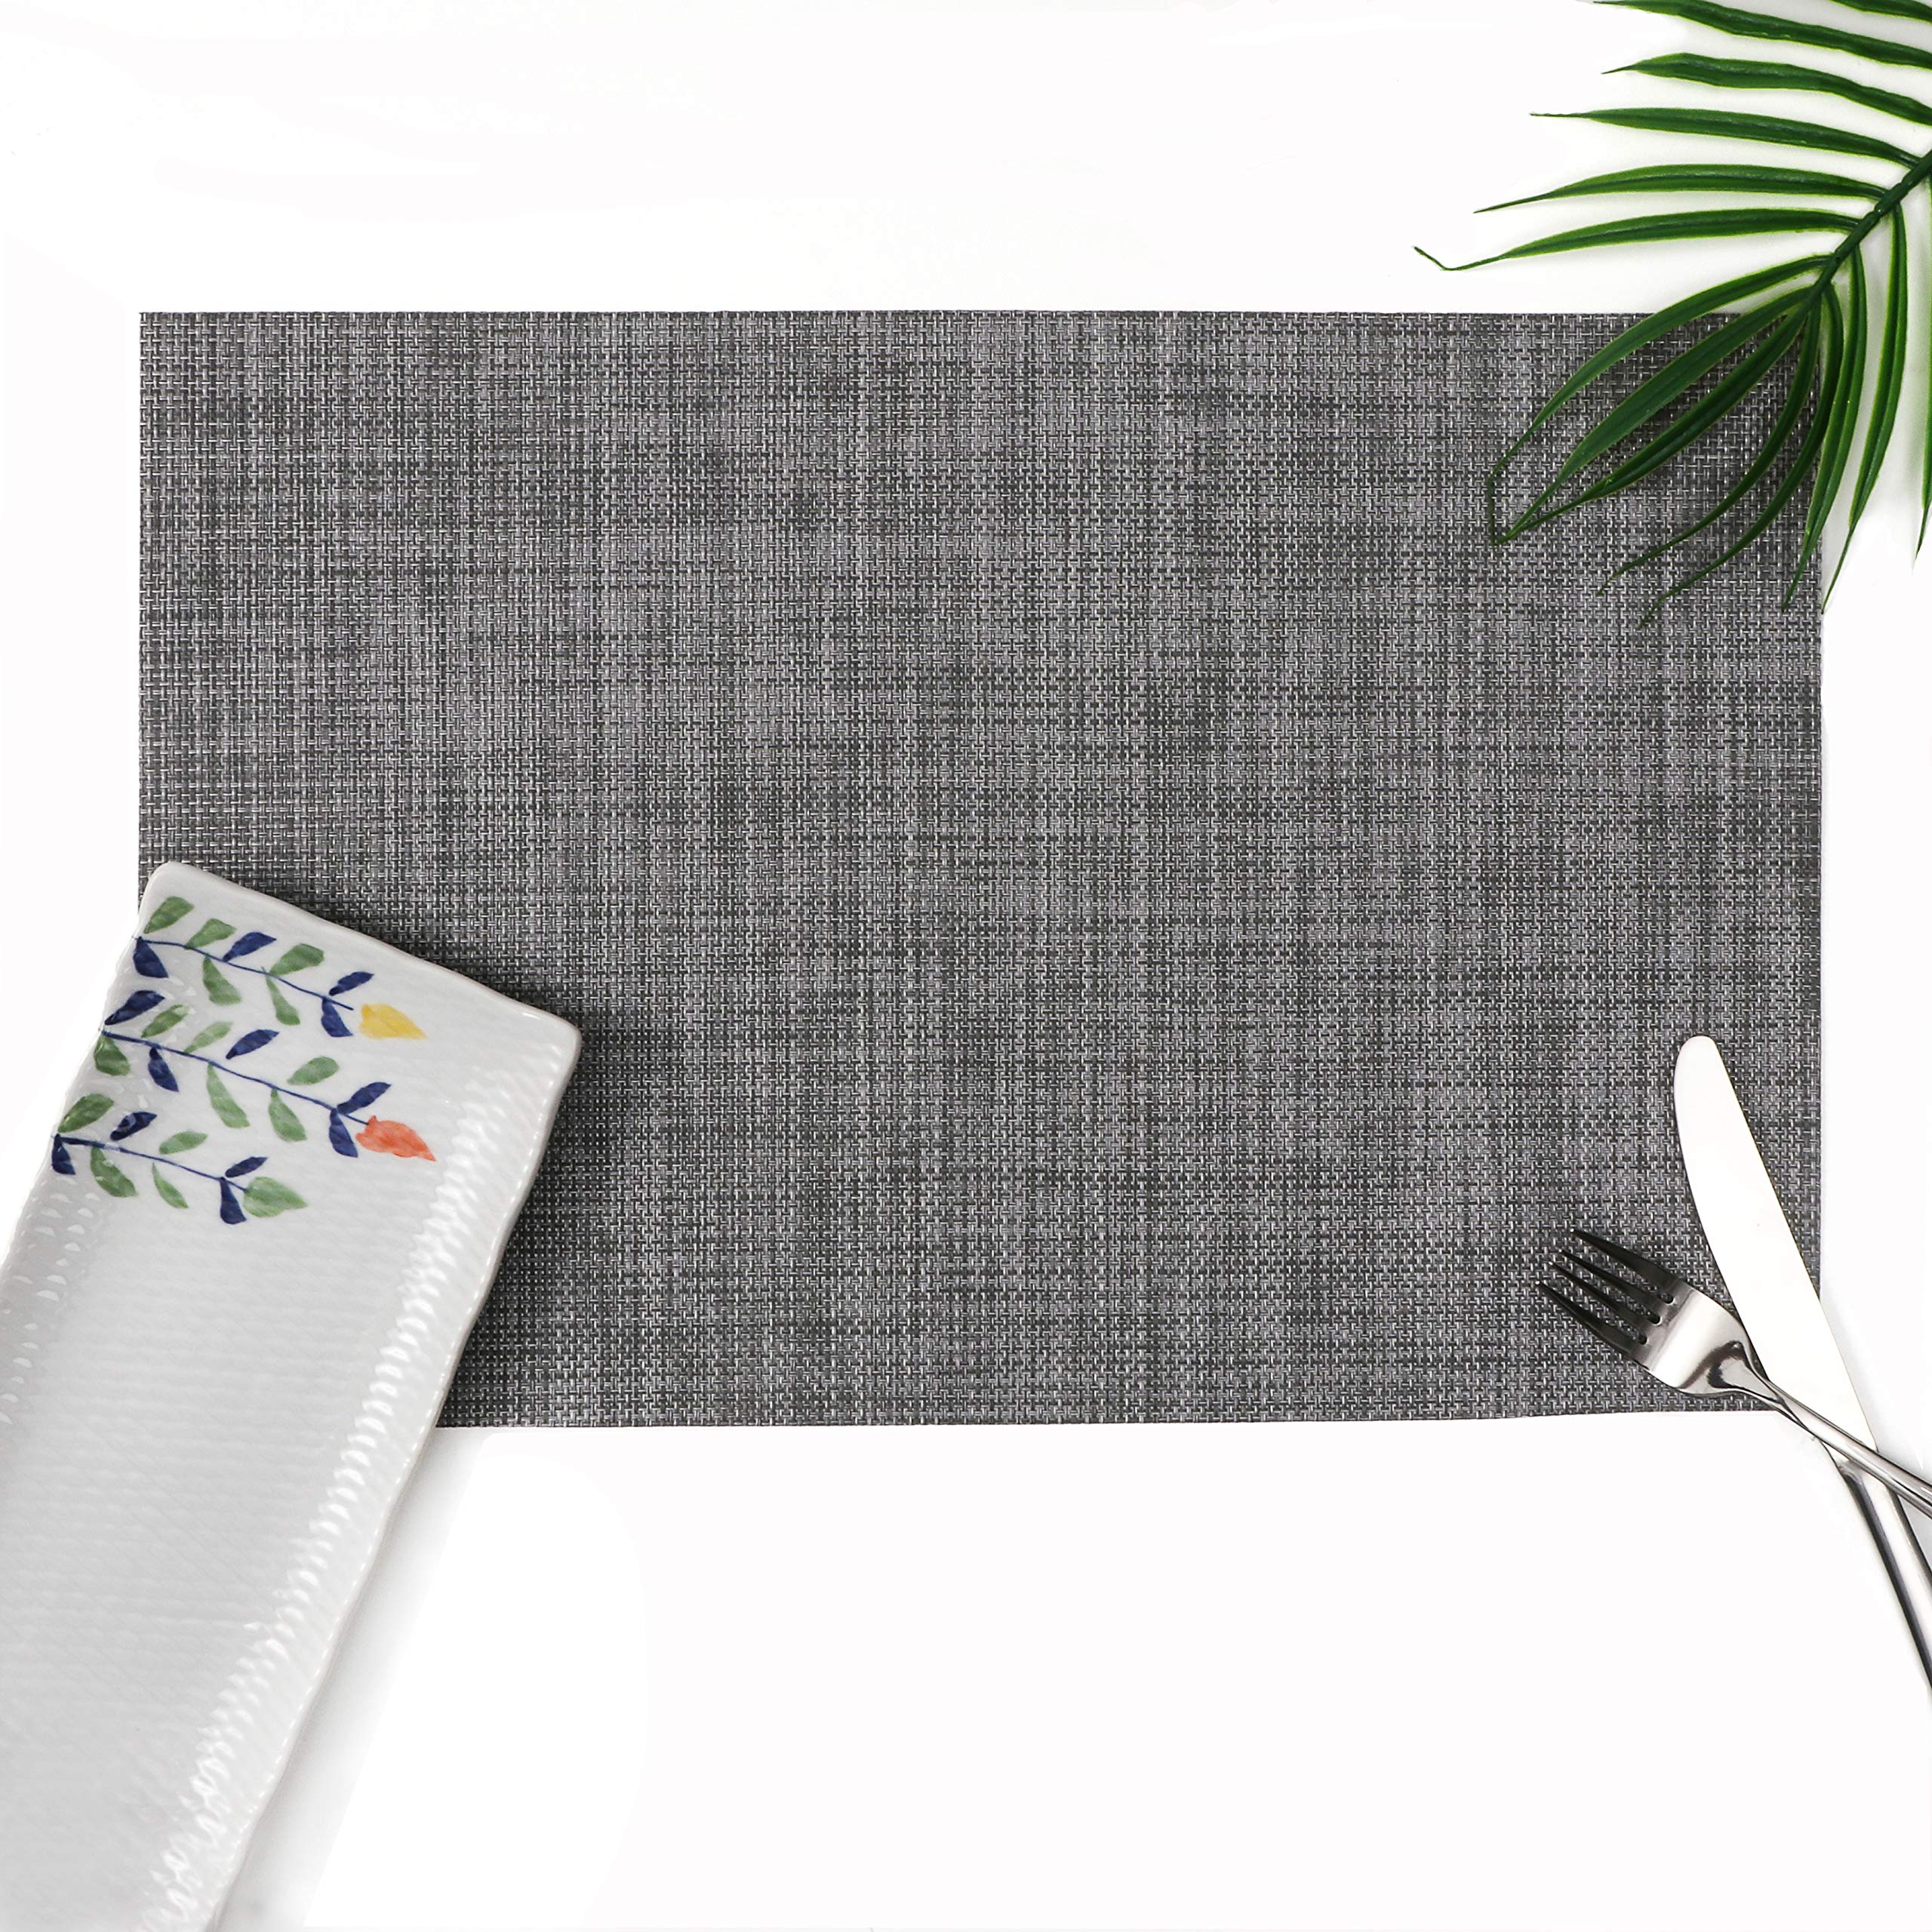 Millie Home Placemats for Dining Table Vinyl Heat Resistant Wipeable Placemat Non-Slip Washable PVC Kitchen Place Mats Set of 4,Gray White